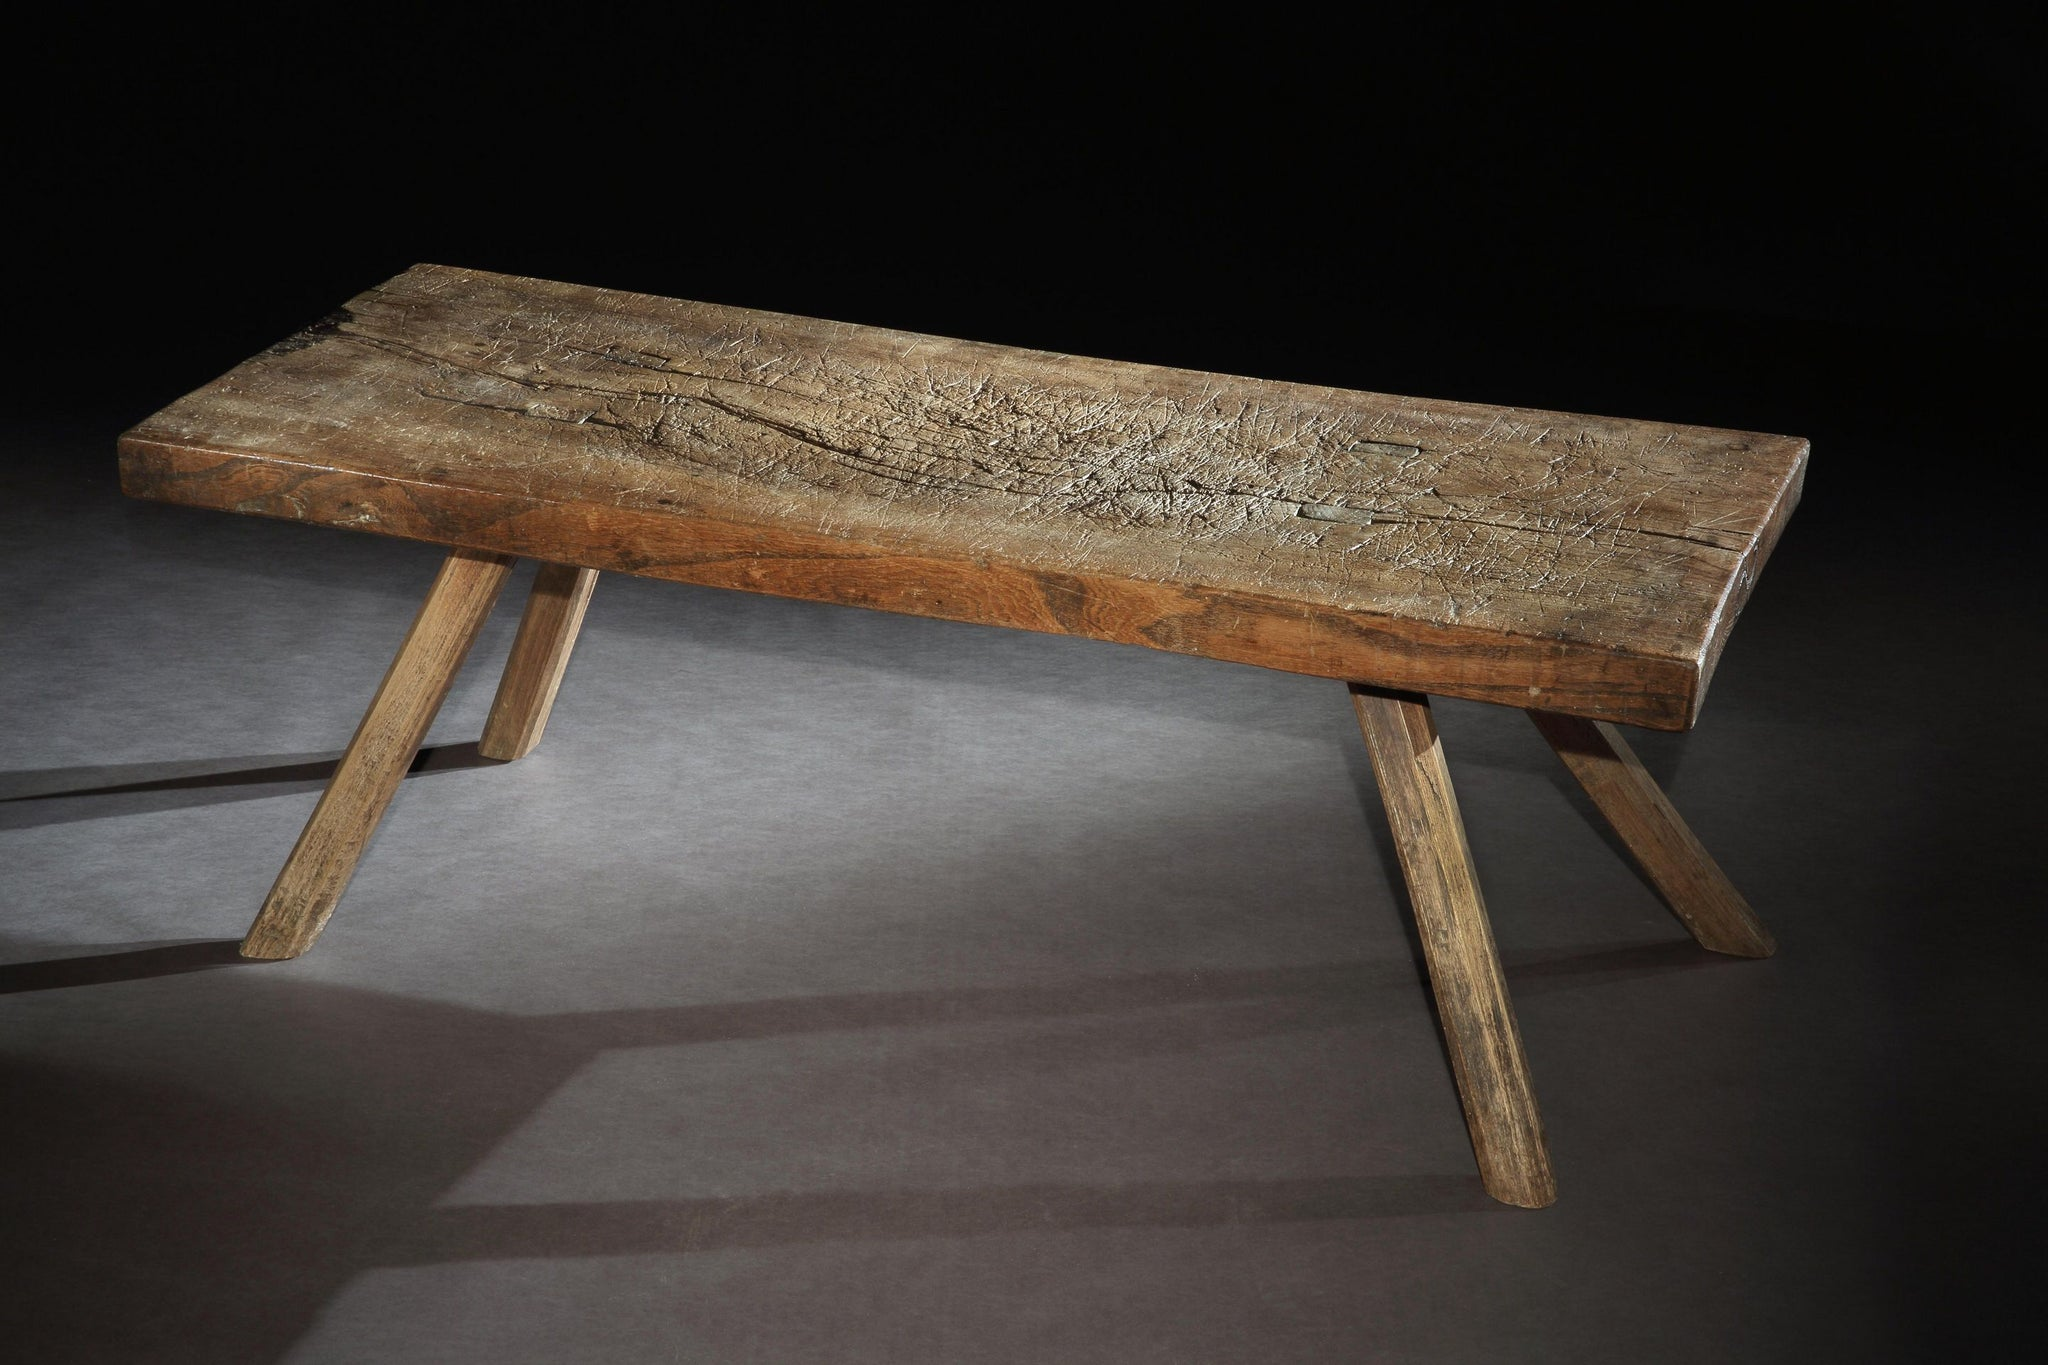 Fine Primitive Vernacular Pig Bench or Low Work Table